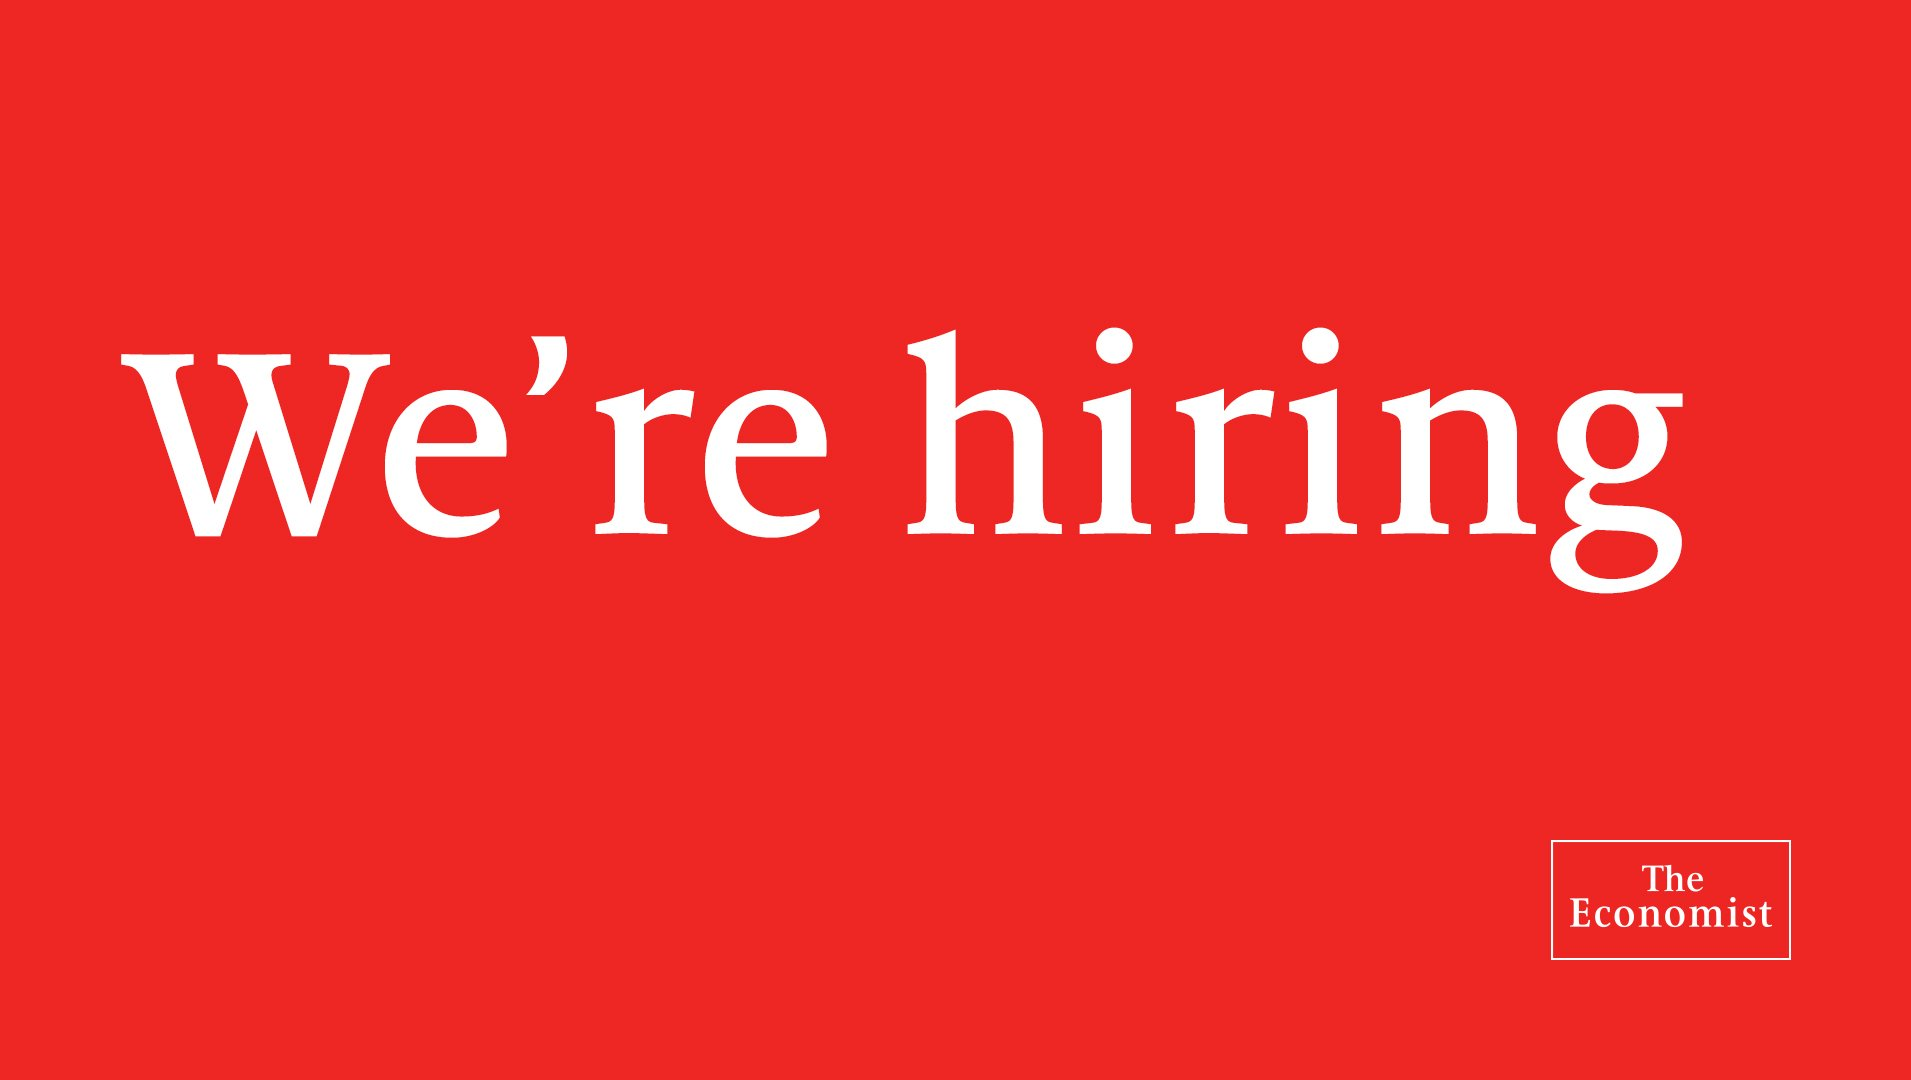 Looking for a first job in journalism and social media? We're hiring https://t.co/0mGi52so33 https://t.co/Un6UqSxFMW